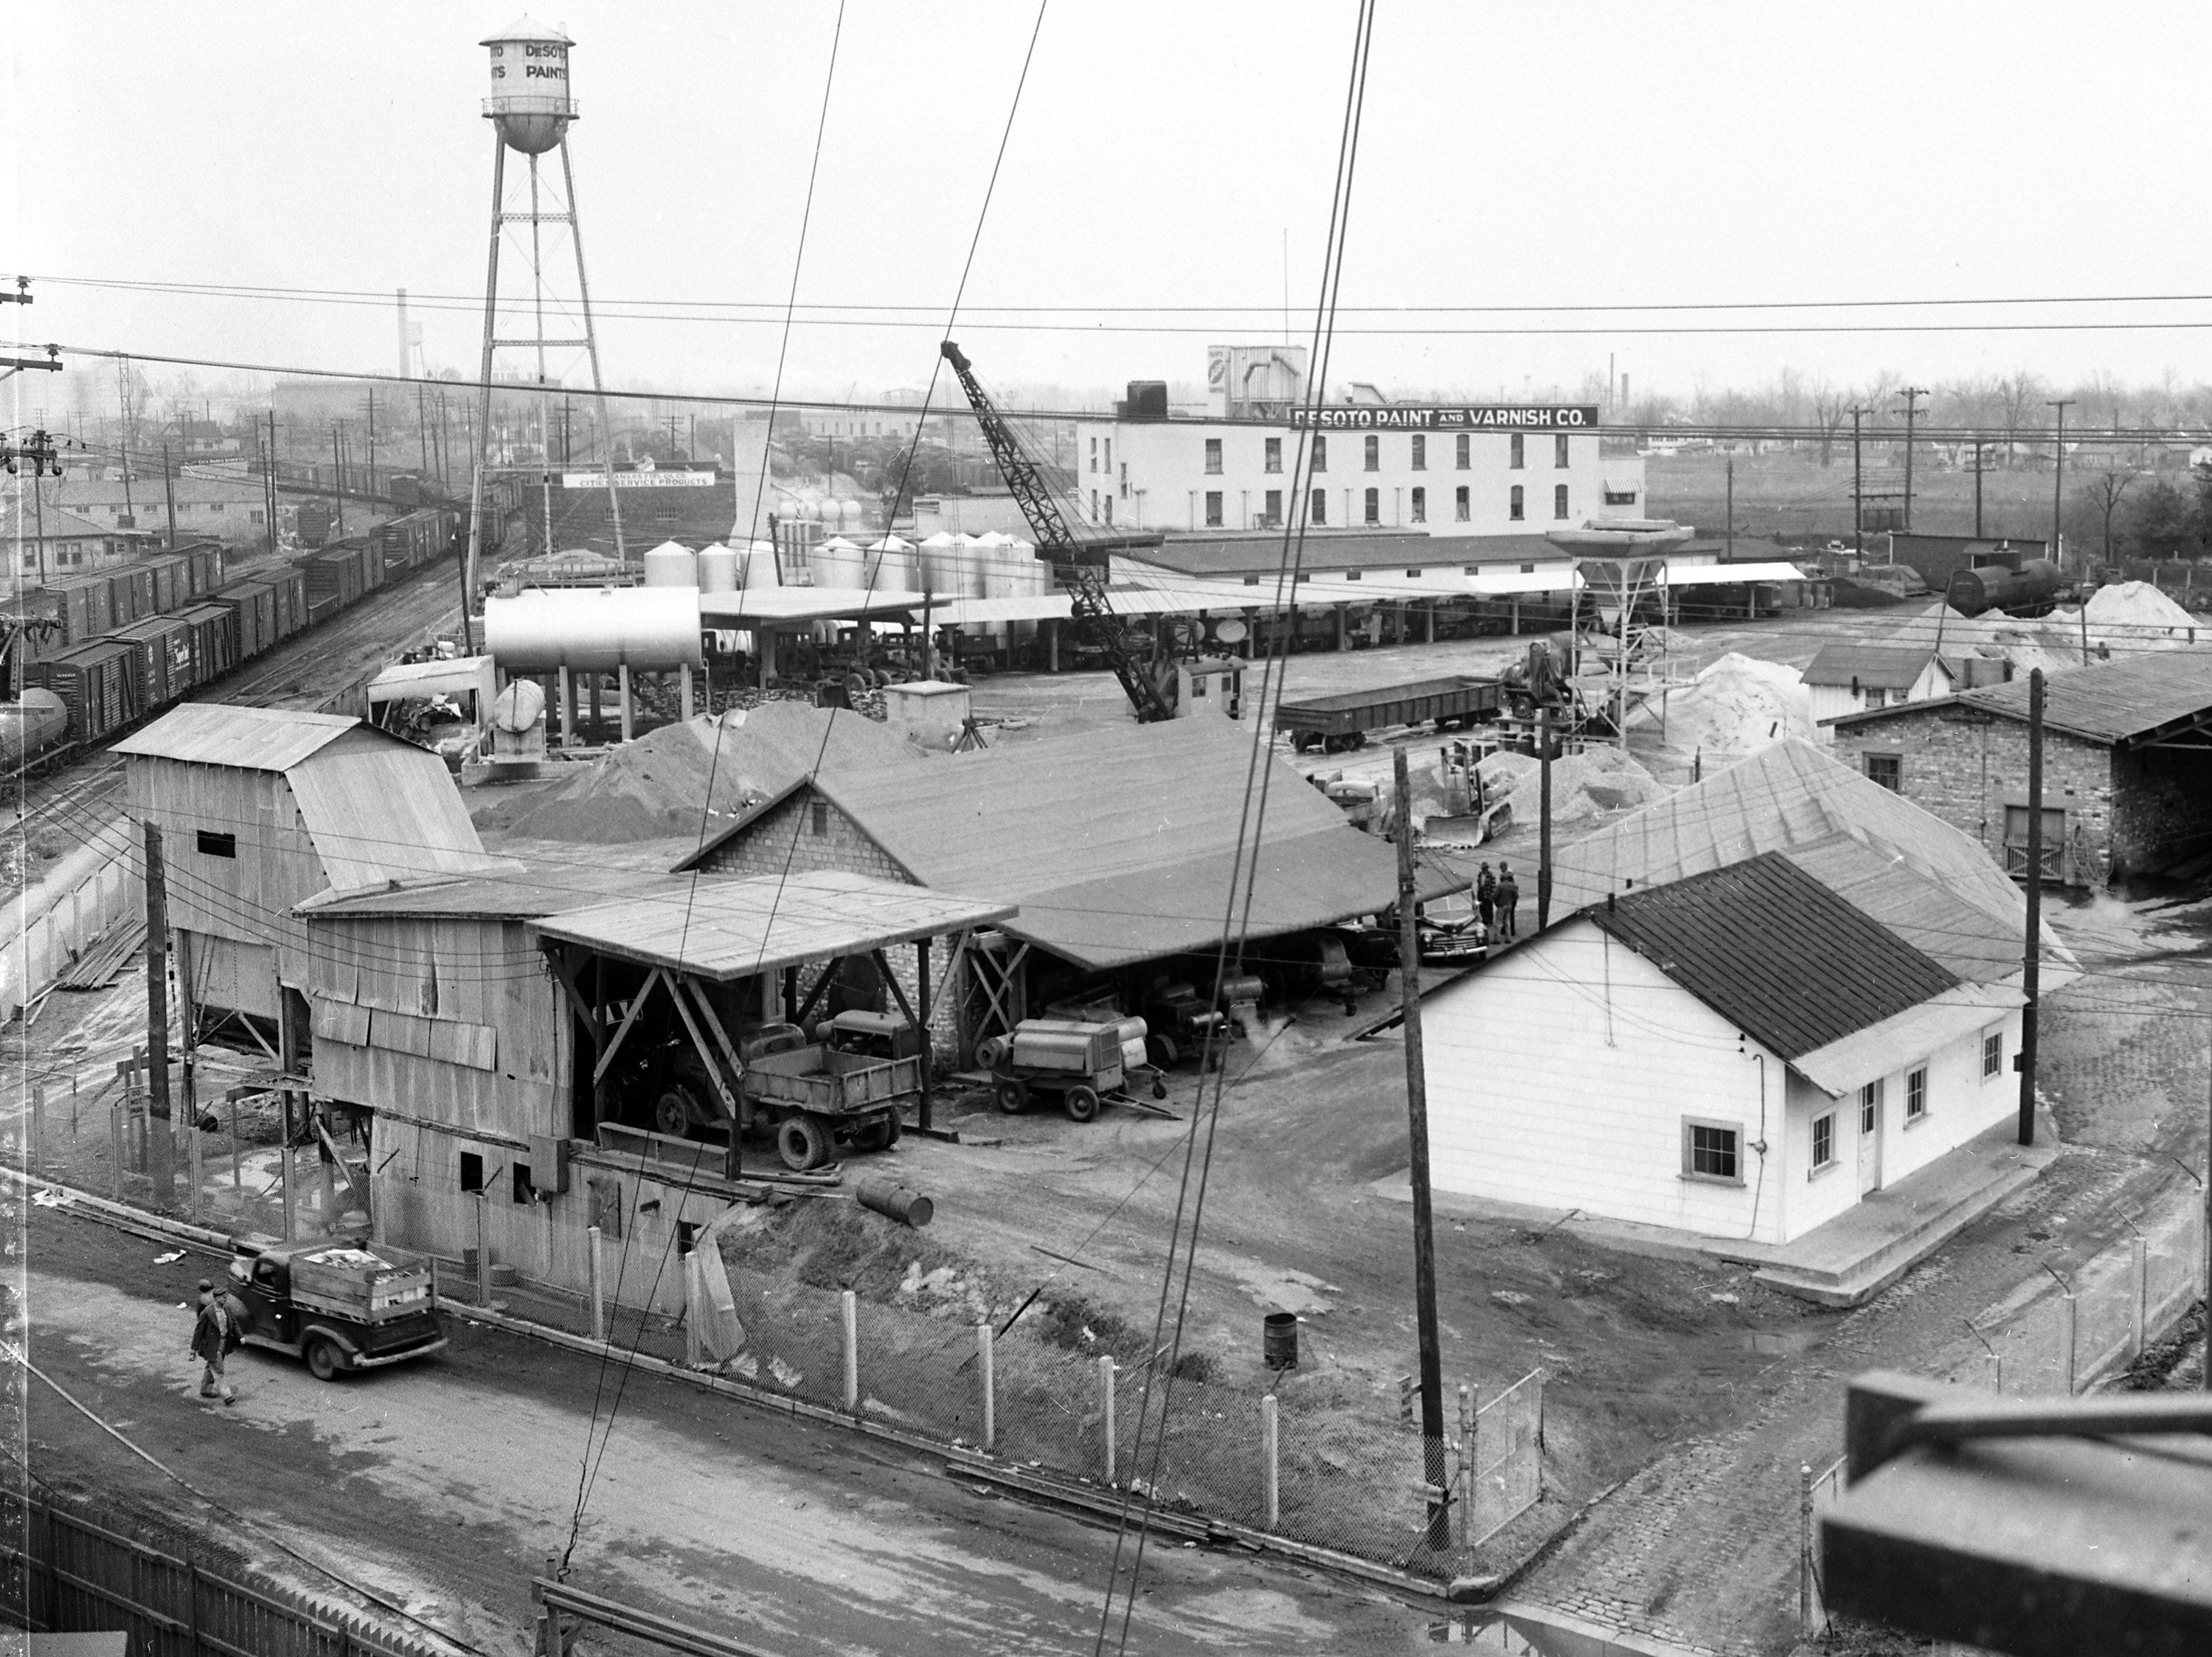 The city's asphalt plant at 1049 Sledge was one of the factors which had Mayor Watkins Overton and the other four city commissioners in a bitter City Hall feud in February 1951.  Mayor Overton was accused of, but denied, offering the plant site for sale without informing the other city commissioners of negotiations.  The $40,000 offer by Sears, Roebuck & Co. was turned down by Commissioner Williams, who valued the plant replacement at more than $107,000.